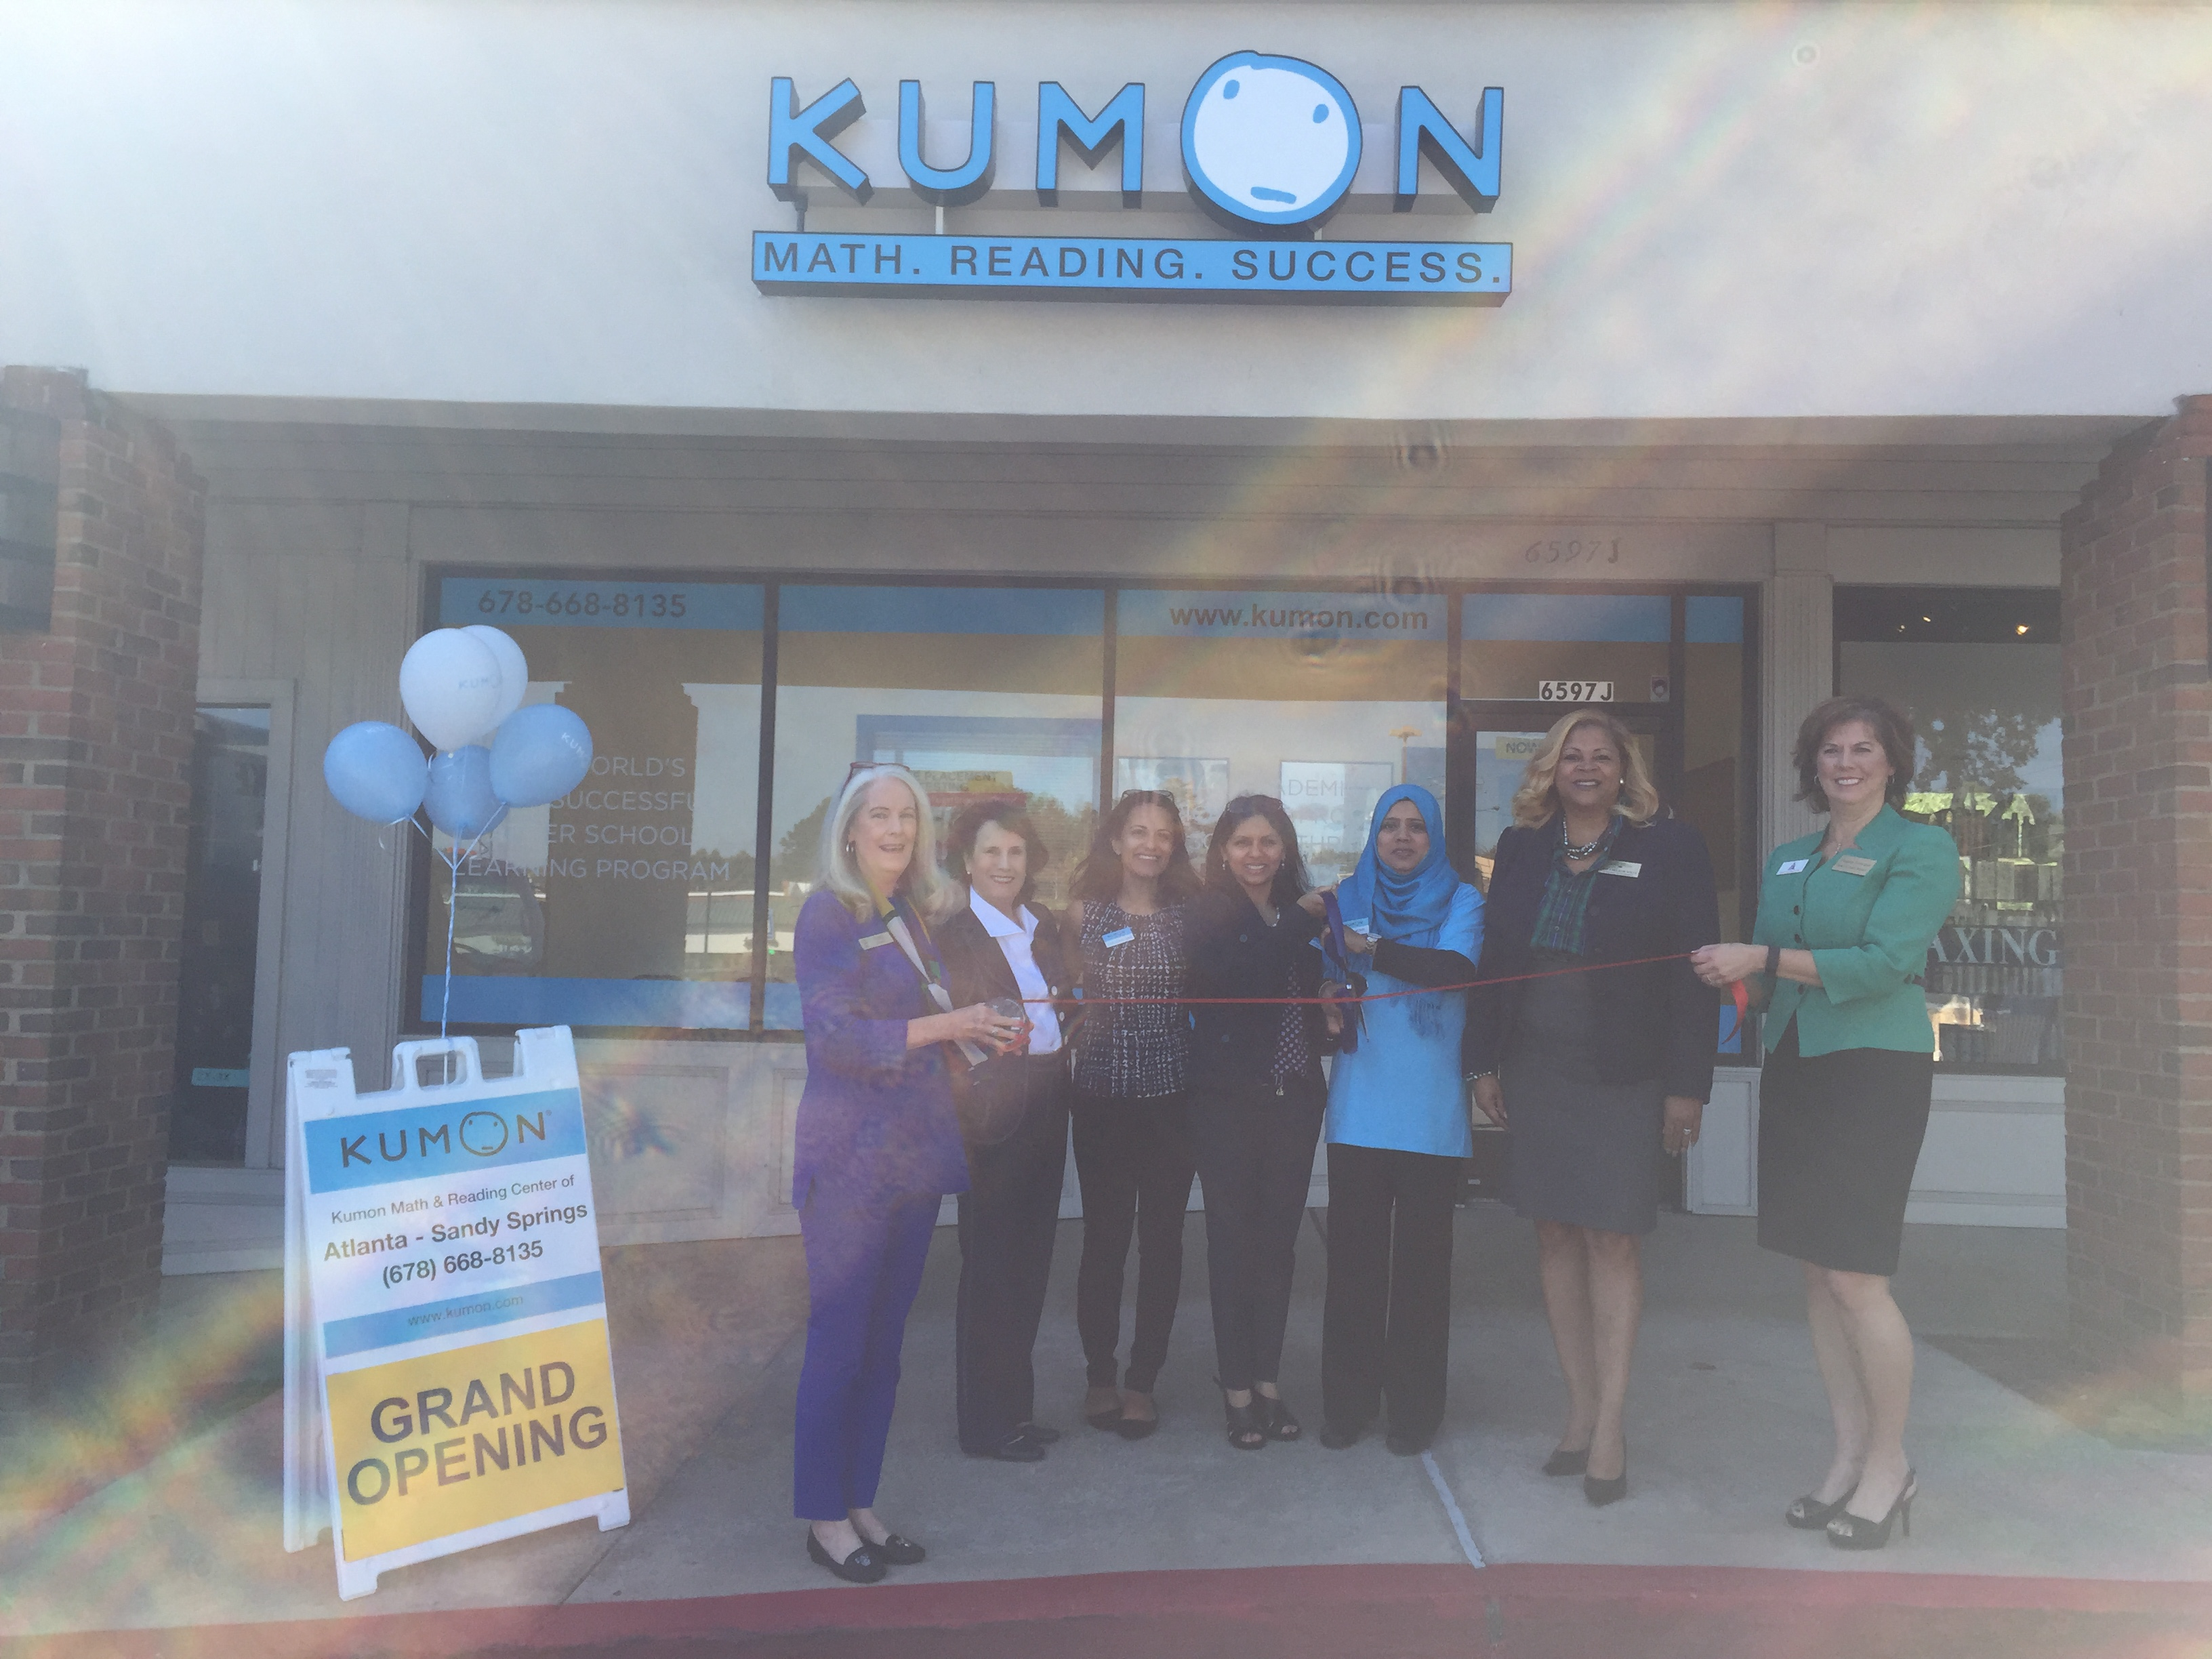 Kumon Math and Reading Center of Atlanta-Sandy Springs